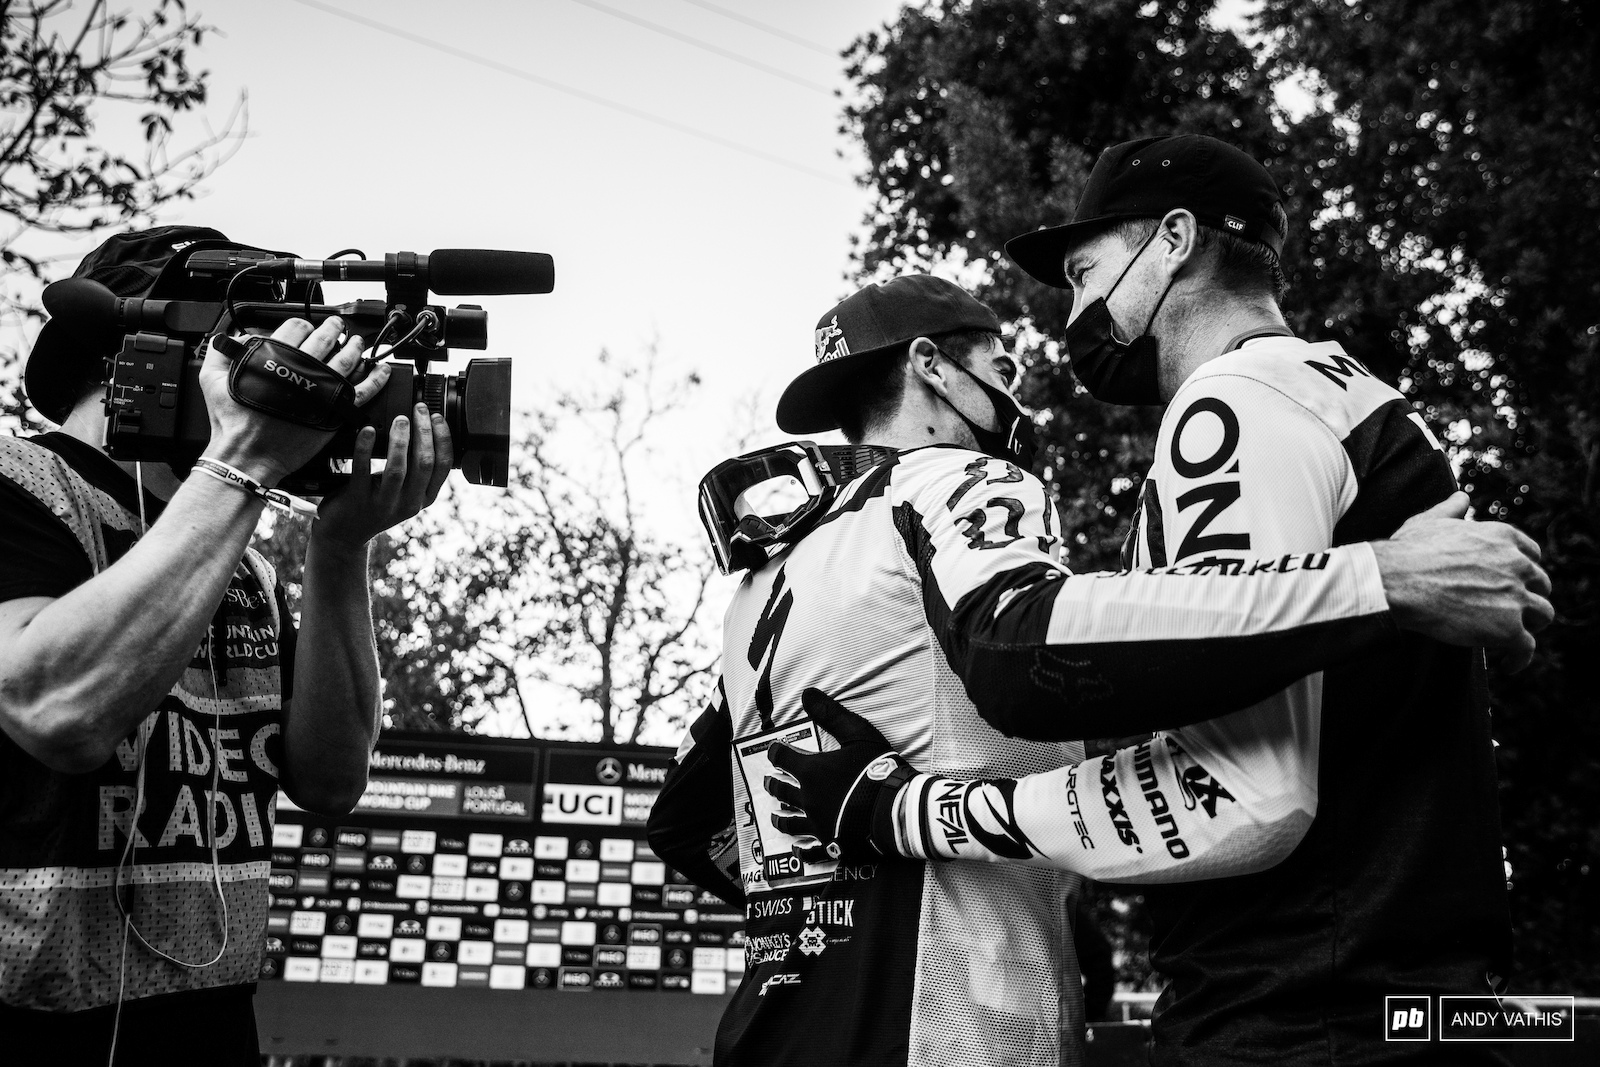 Lot s of respect between these two and today was no different. Greg got his. It s game on for the final round.